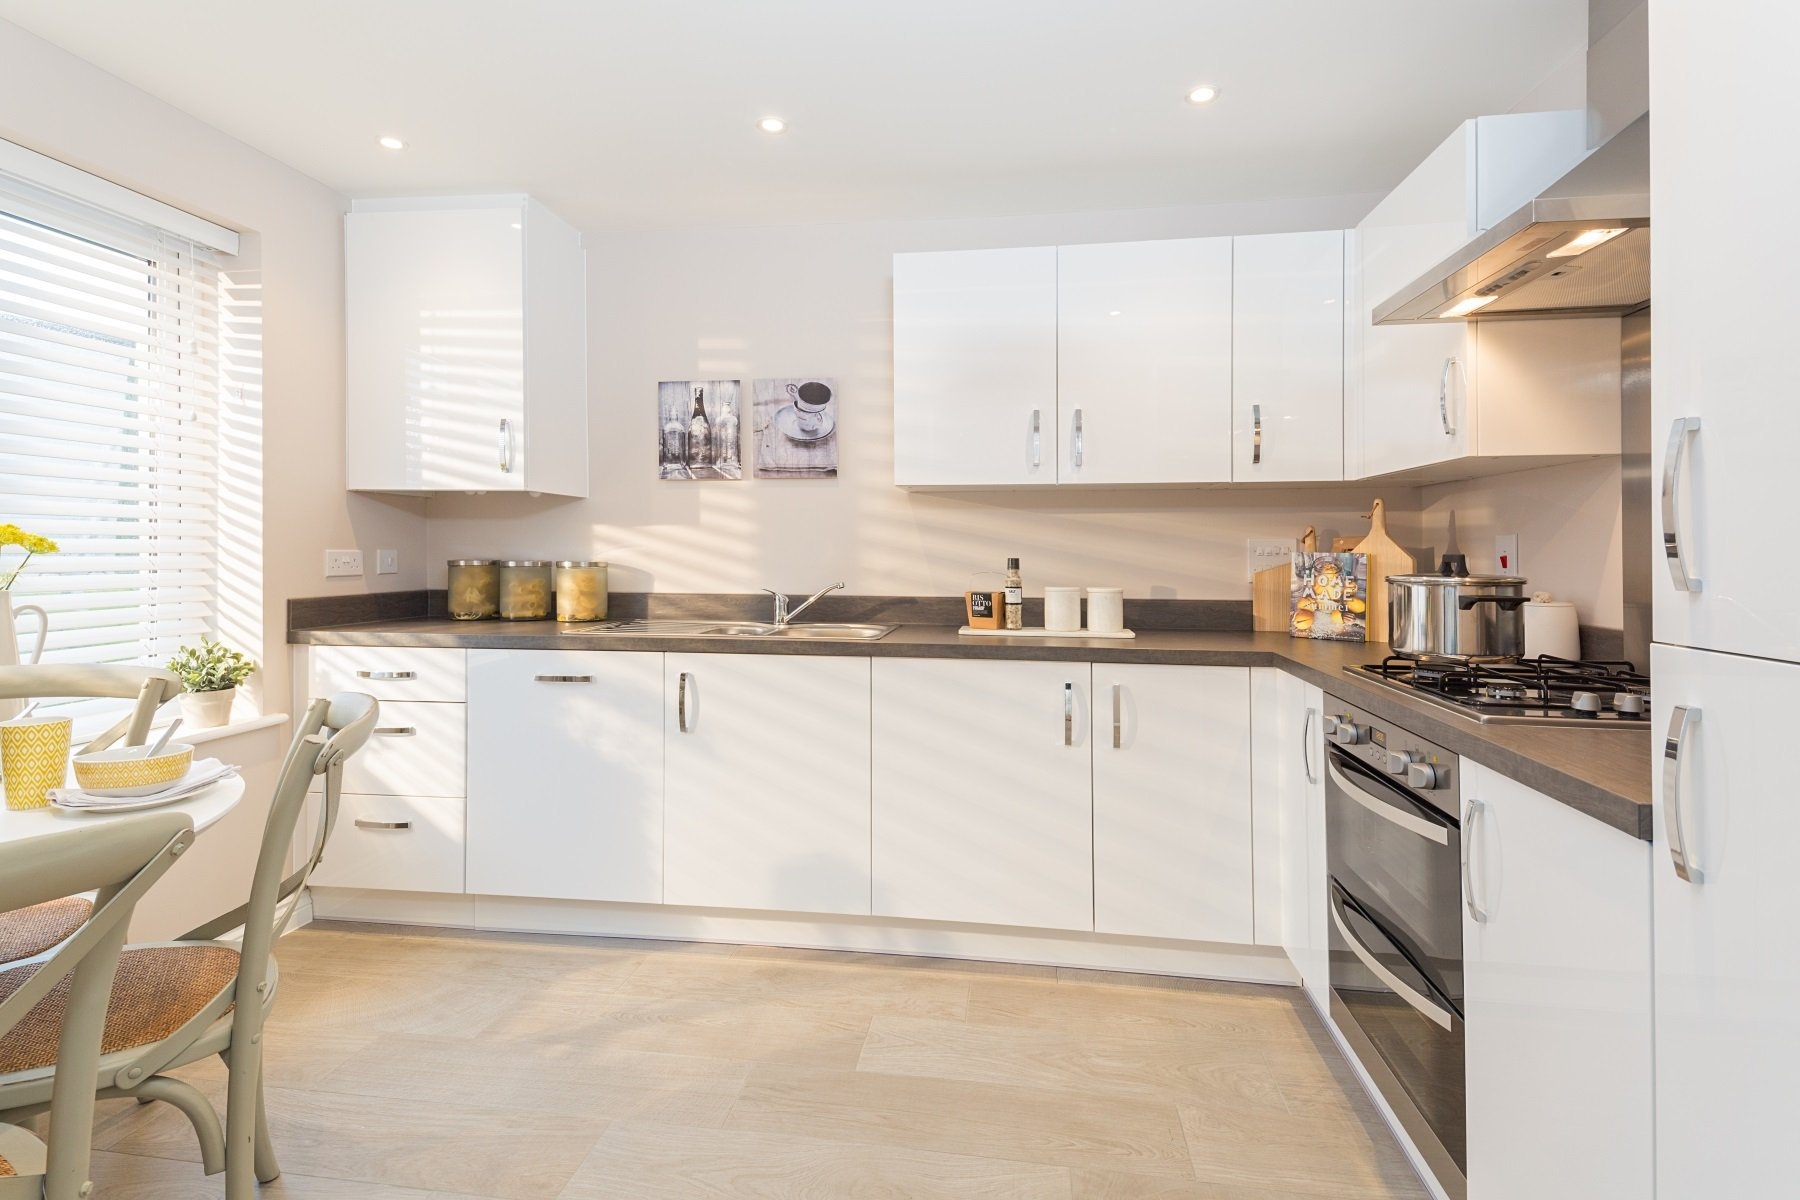 TW Exeter - Hele Park - Flatford example kitchen 2